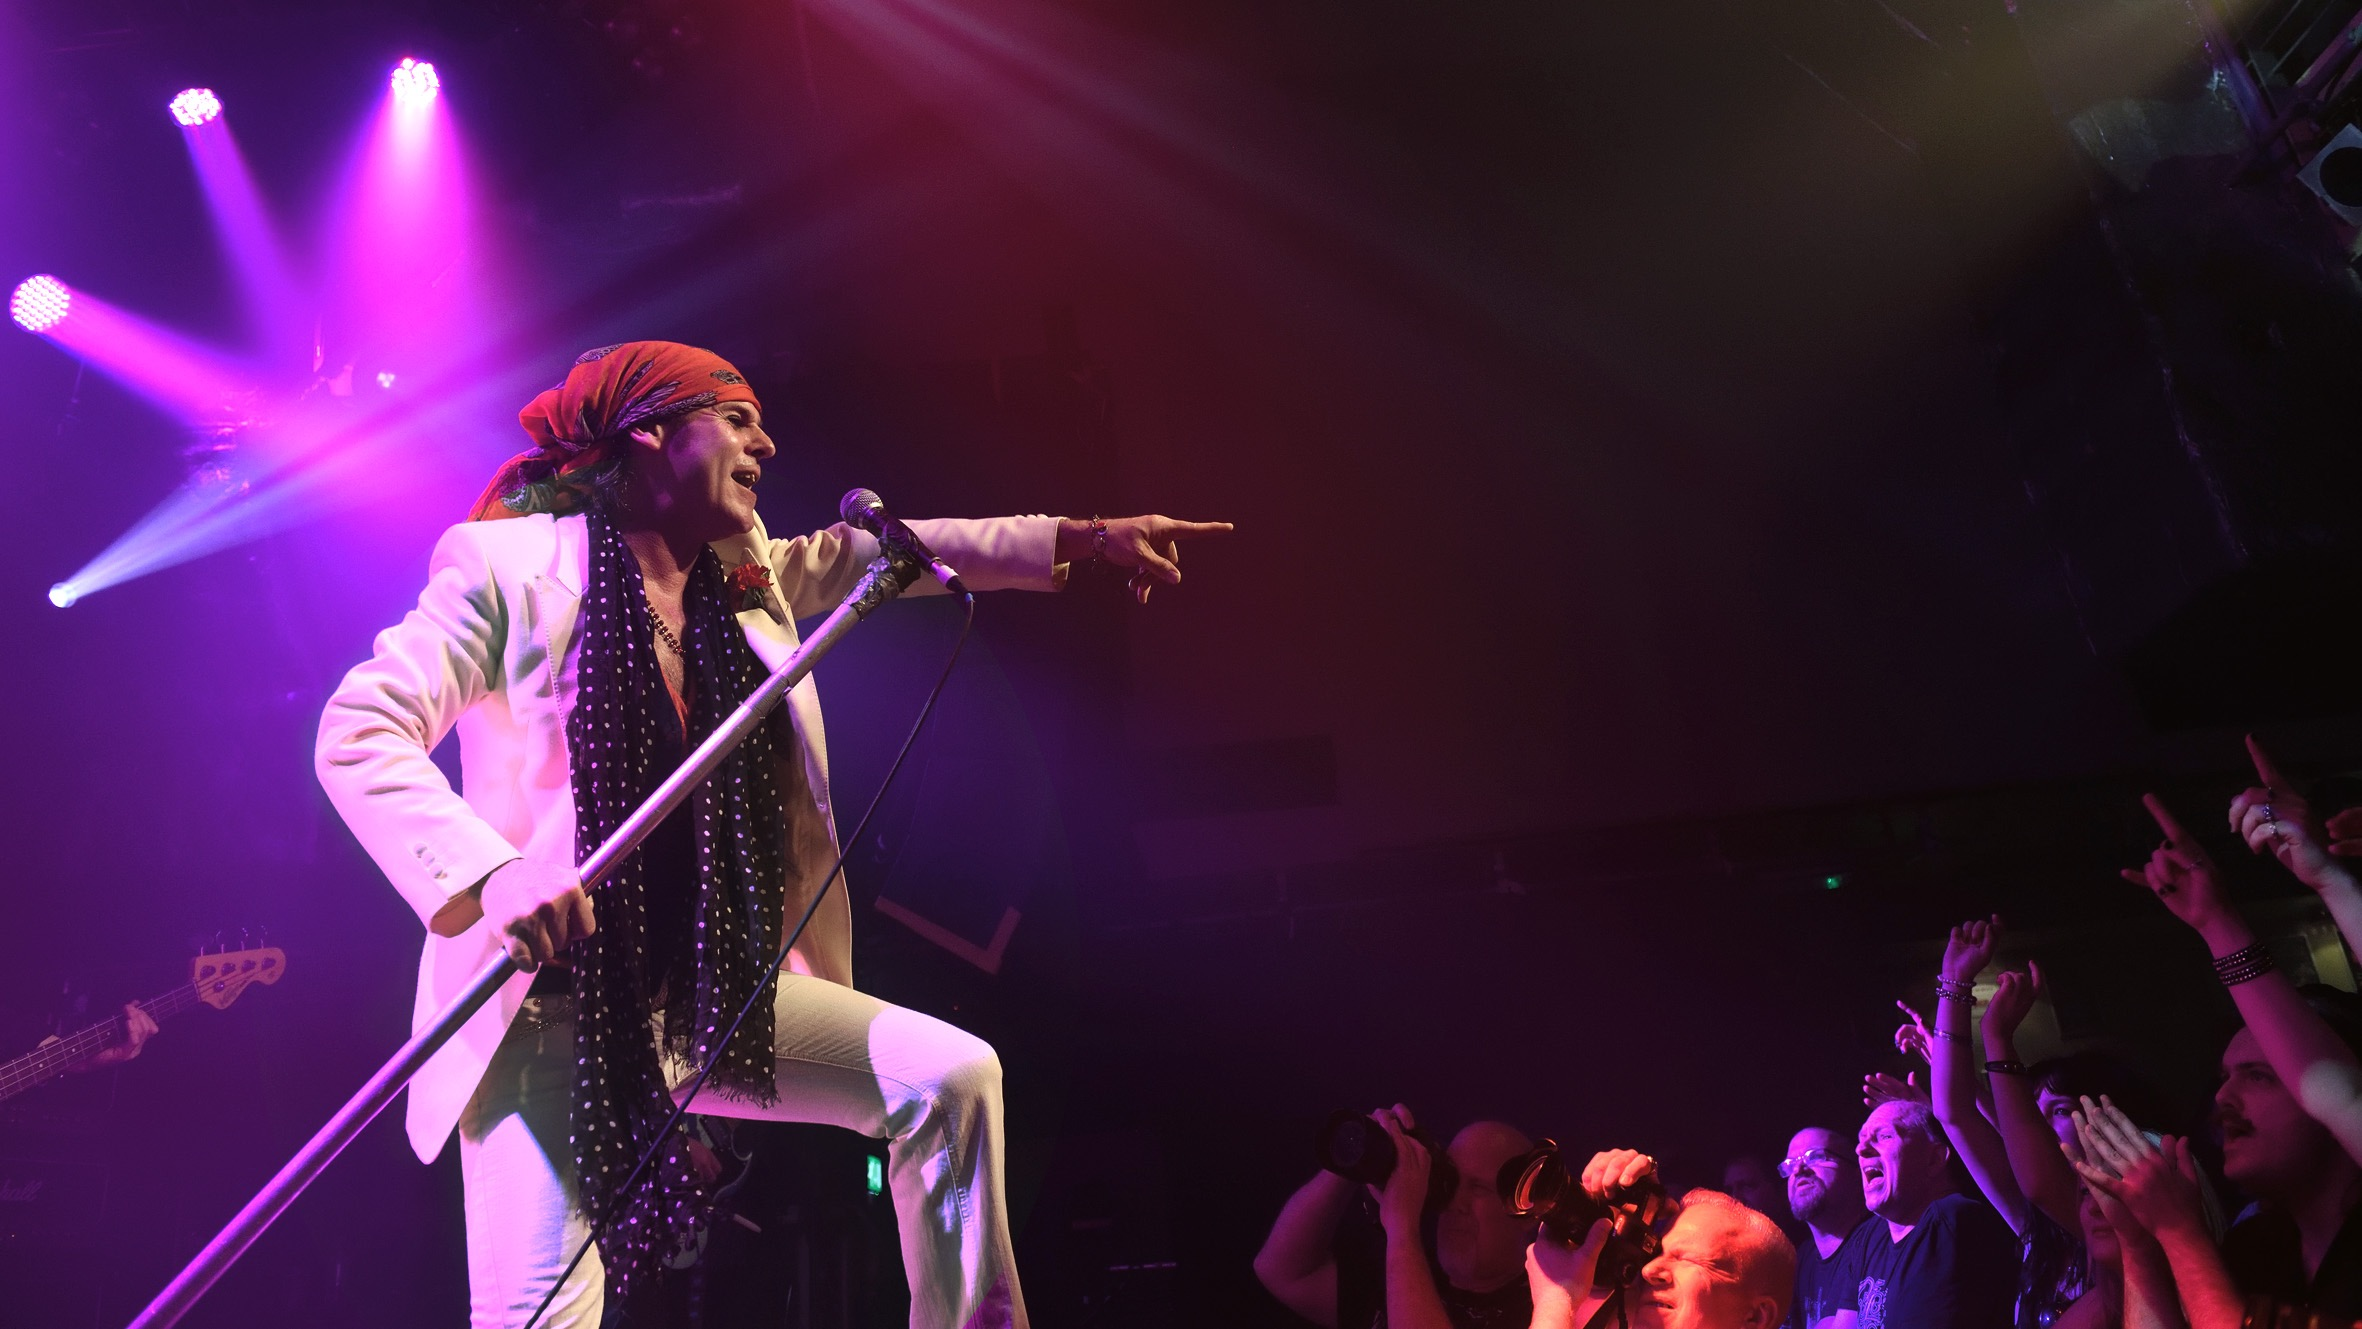 Photo - The Quireboys Live at The O2 Islington